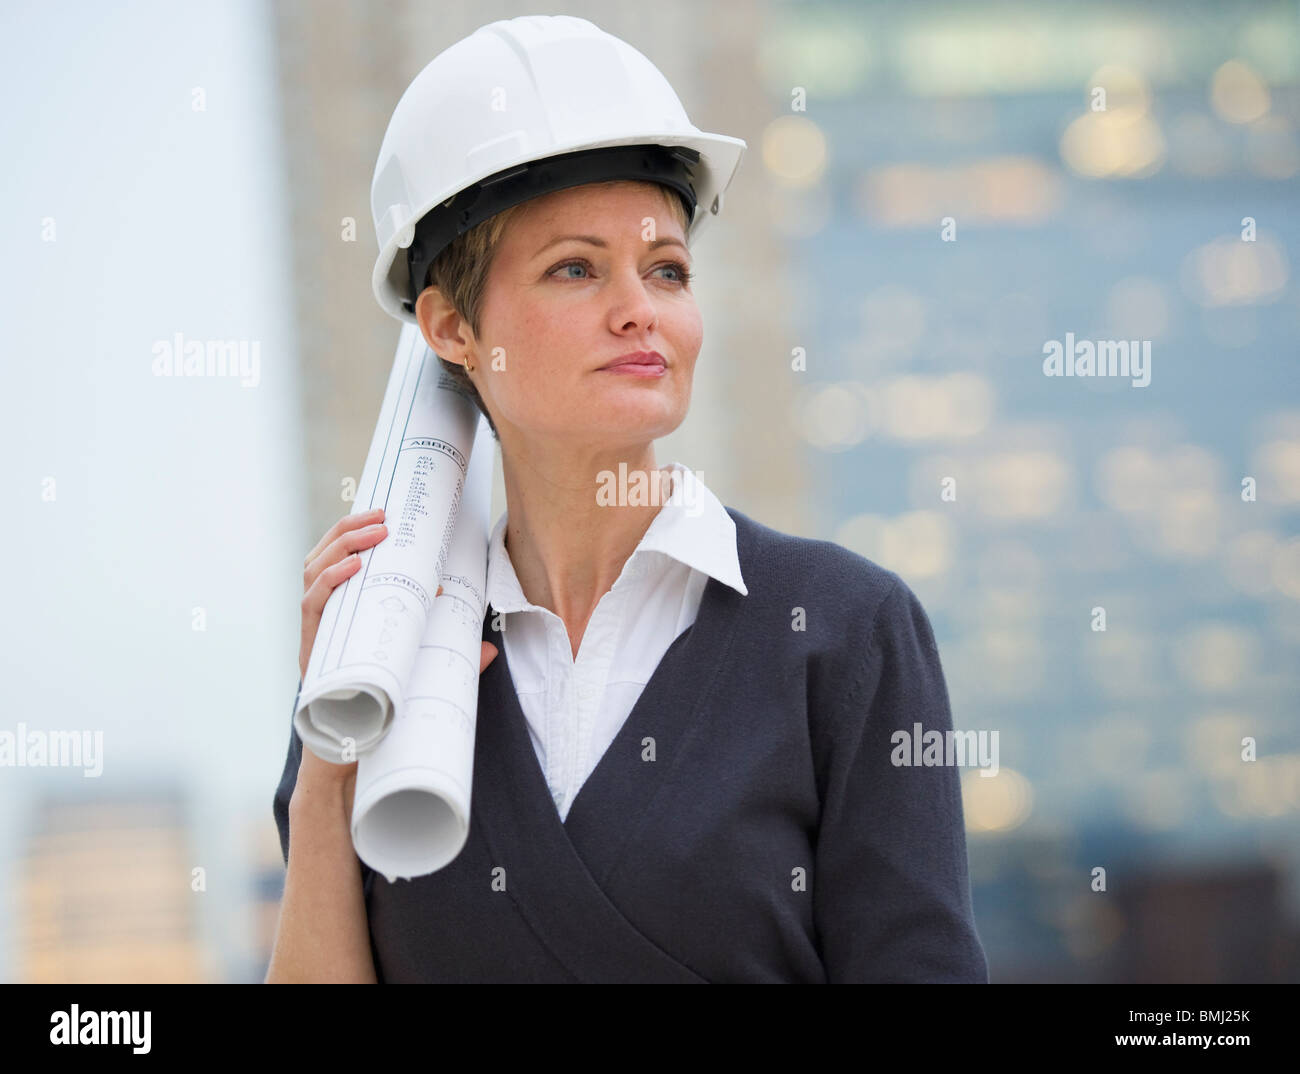 Female architect on construction site Stock Photo